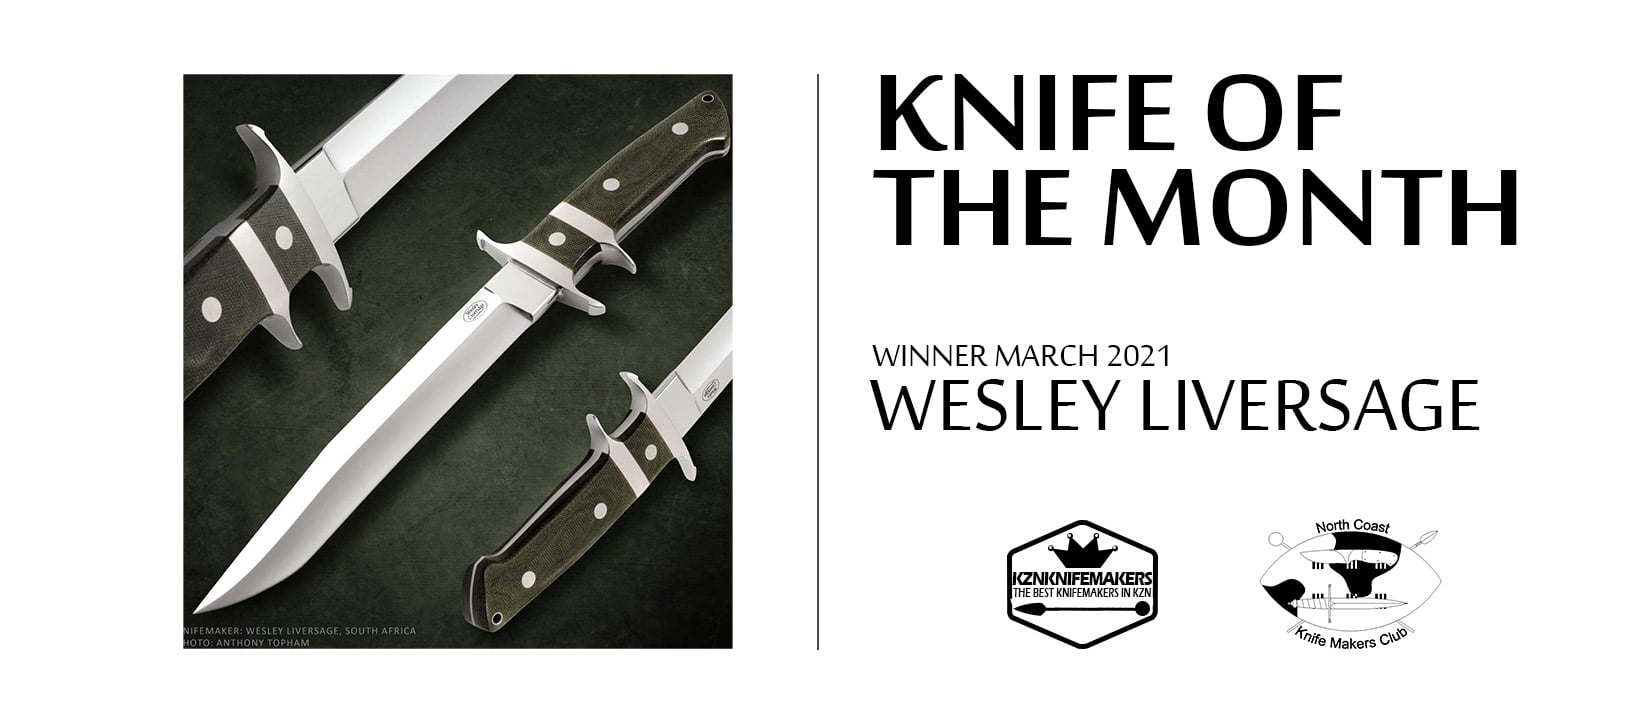 Knifeof the month winner March 2021